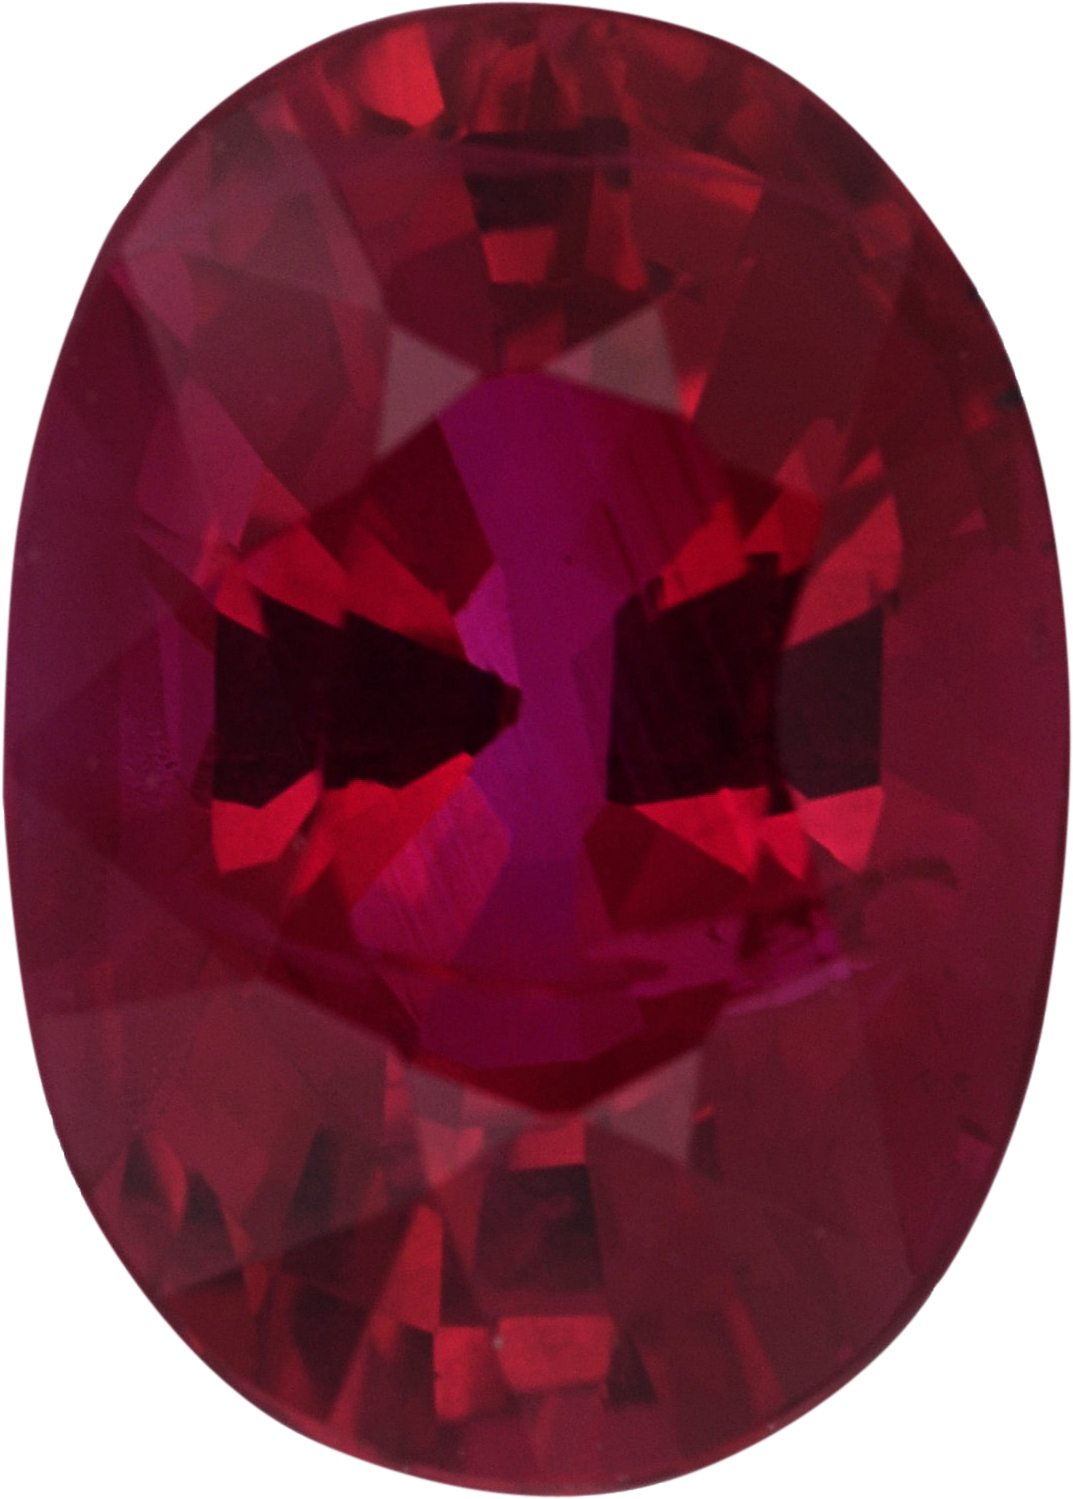 Attractive Loose Ruby Gem in Oval Cut,  Red Color, 7.87 x 5.67 mm, 1.62 carats